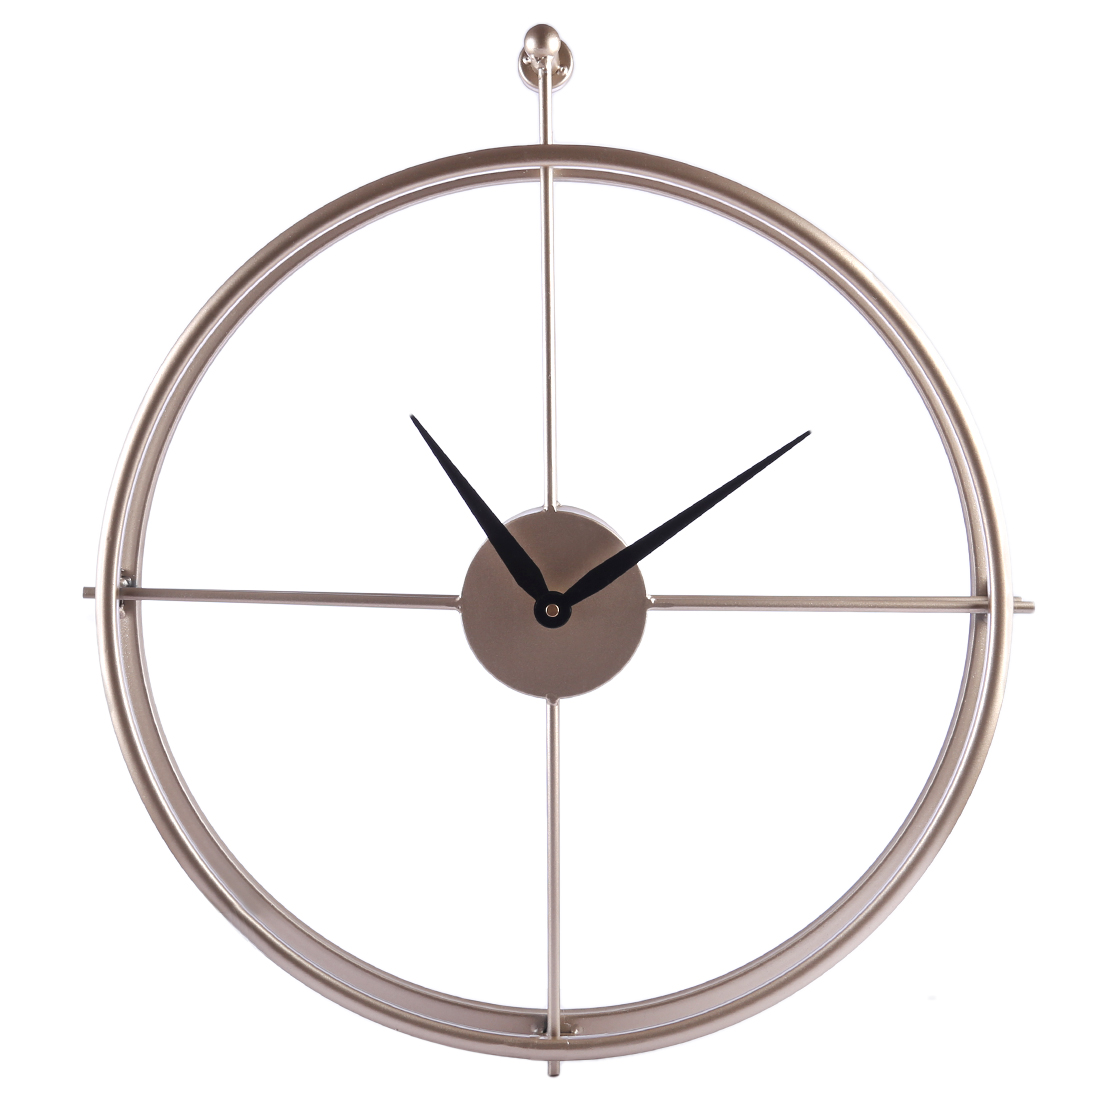 Hot Unique 55cm Large Brief European Style Silent Iron Wall Clock Modern Design For Home Office Decor Hanging Wall Watch Clocks